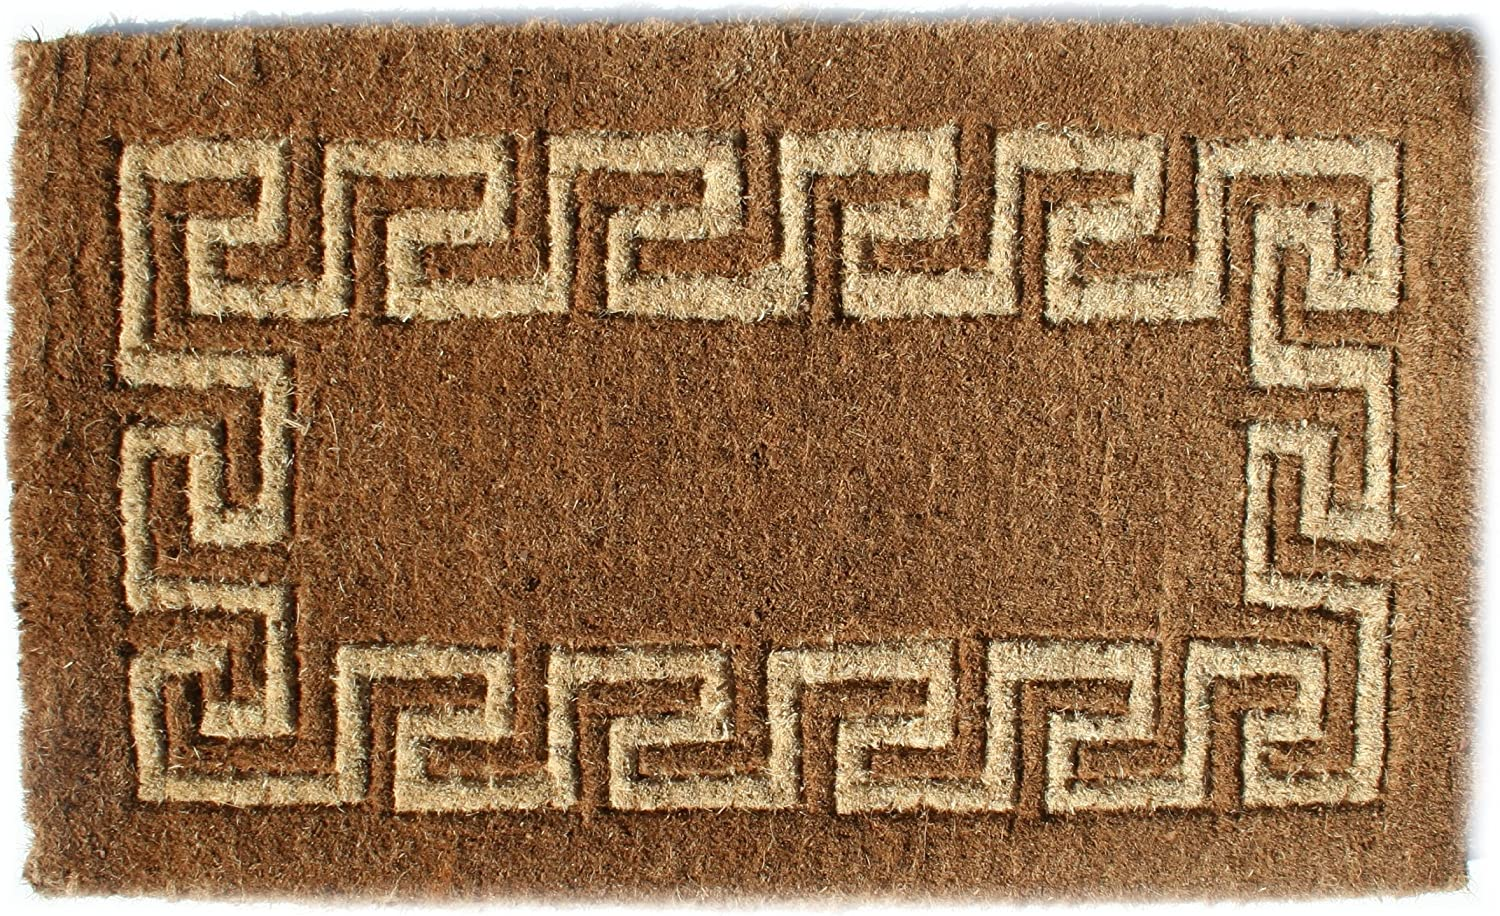 Imports Decor Coir Doormat, Greek Key, 18-Inch by 30-Inch